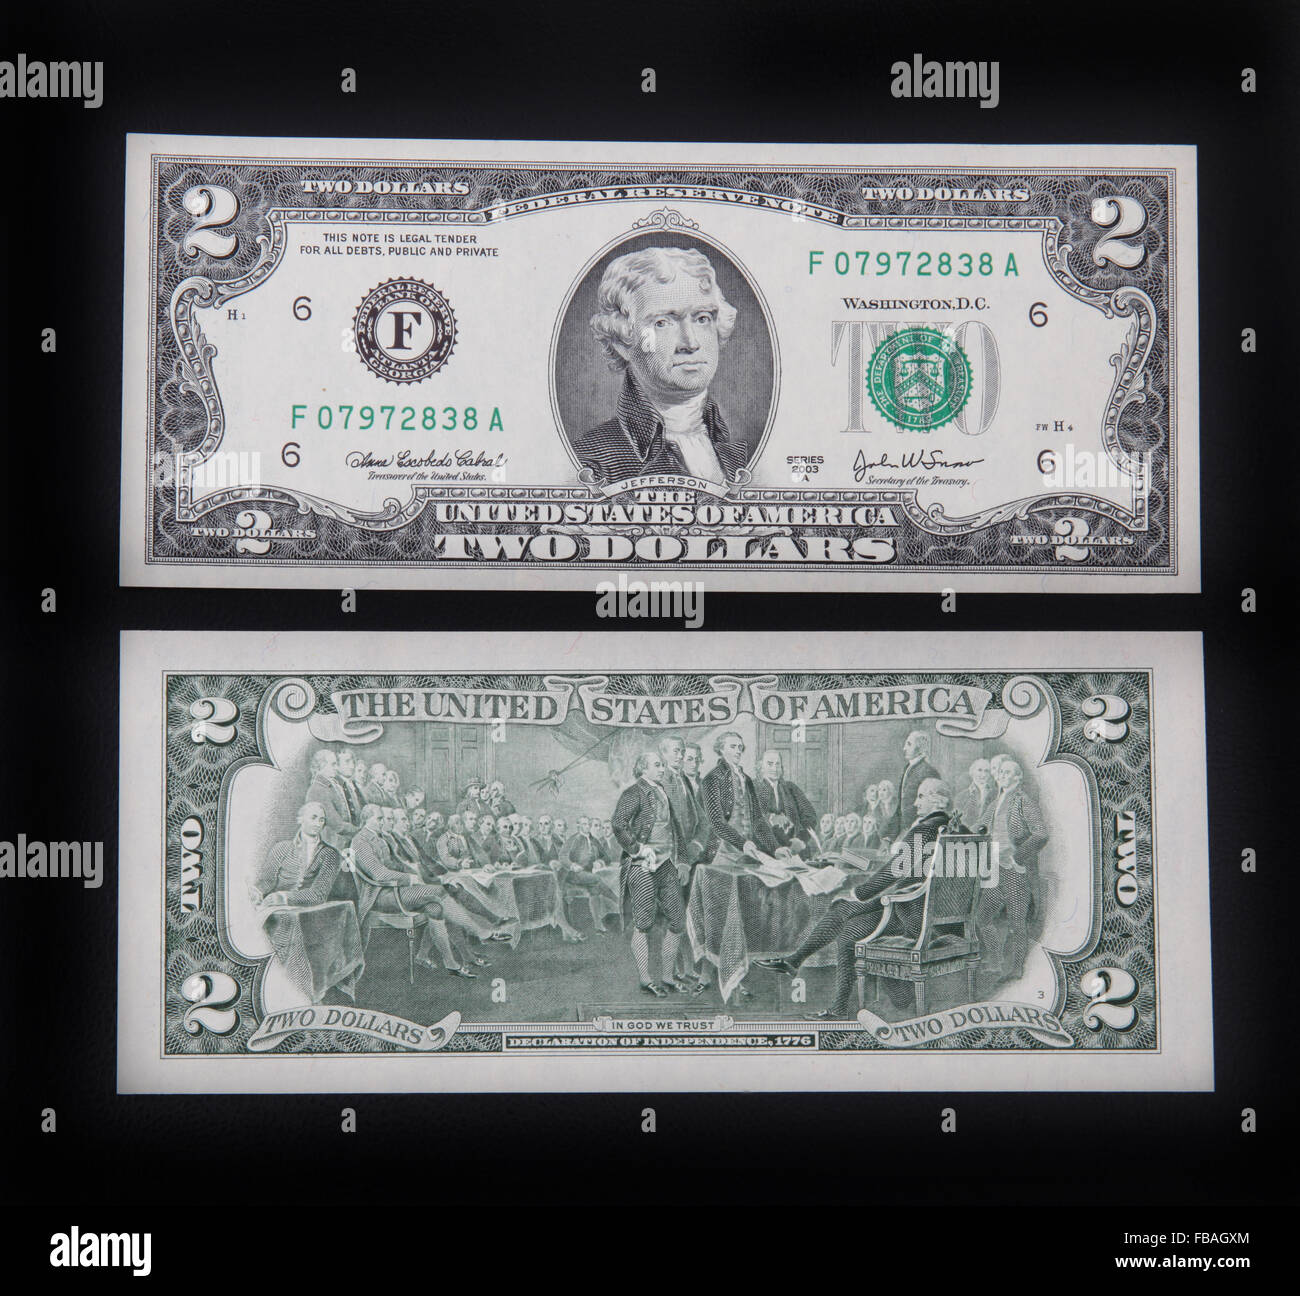 The front and back of a US 2 dollar bill. - Stock Image